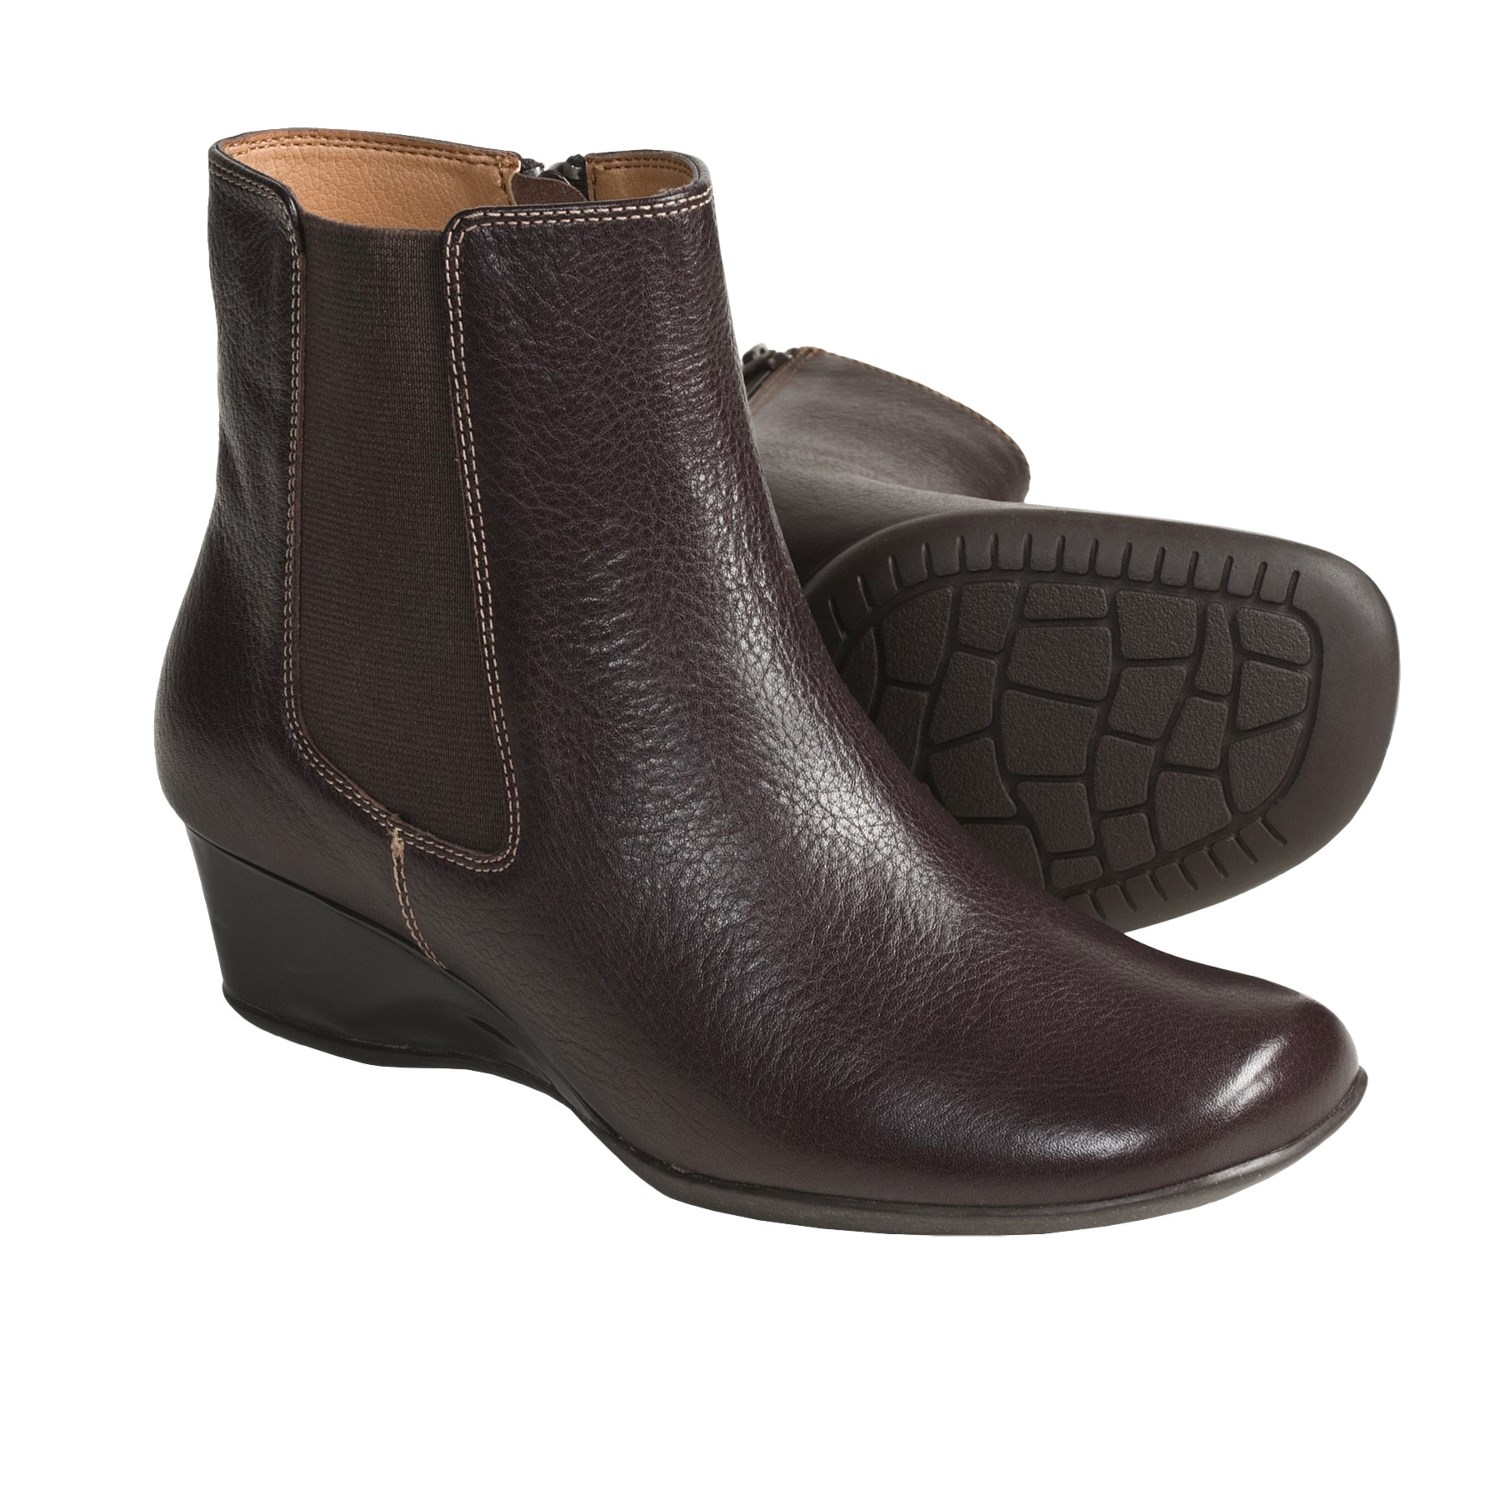 softspots picabo ankle boots wedge heel for